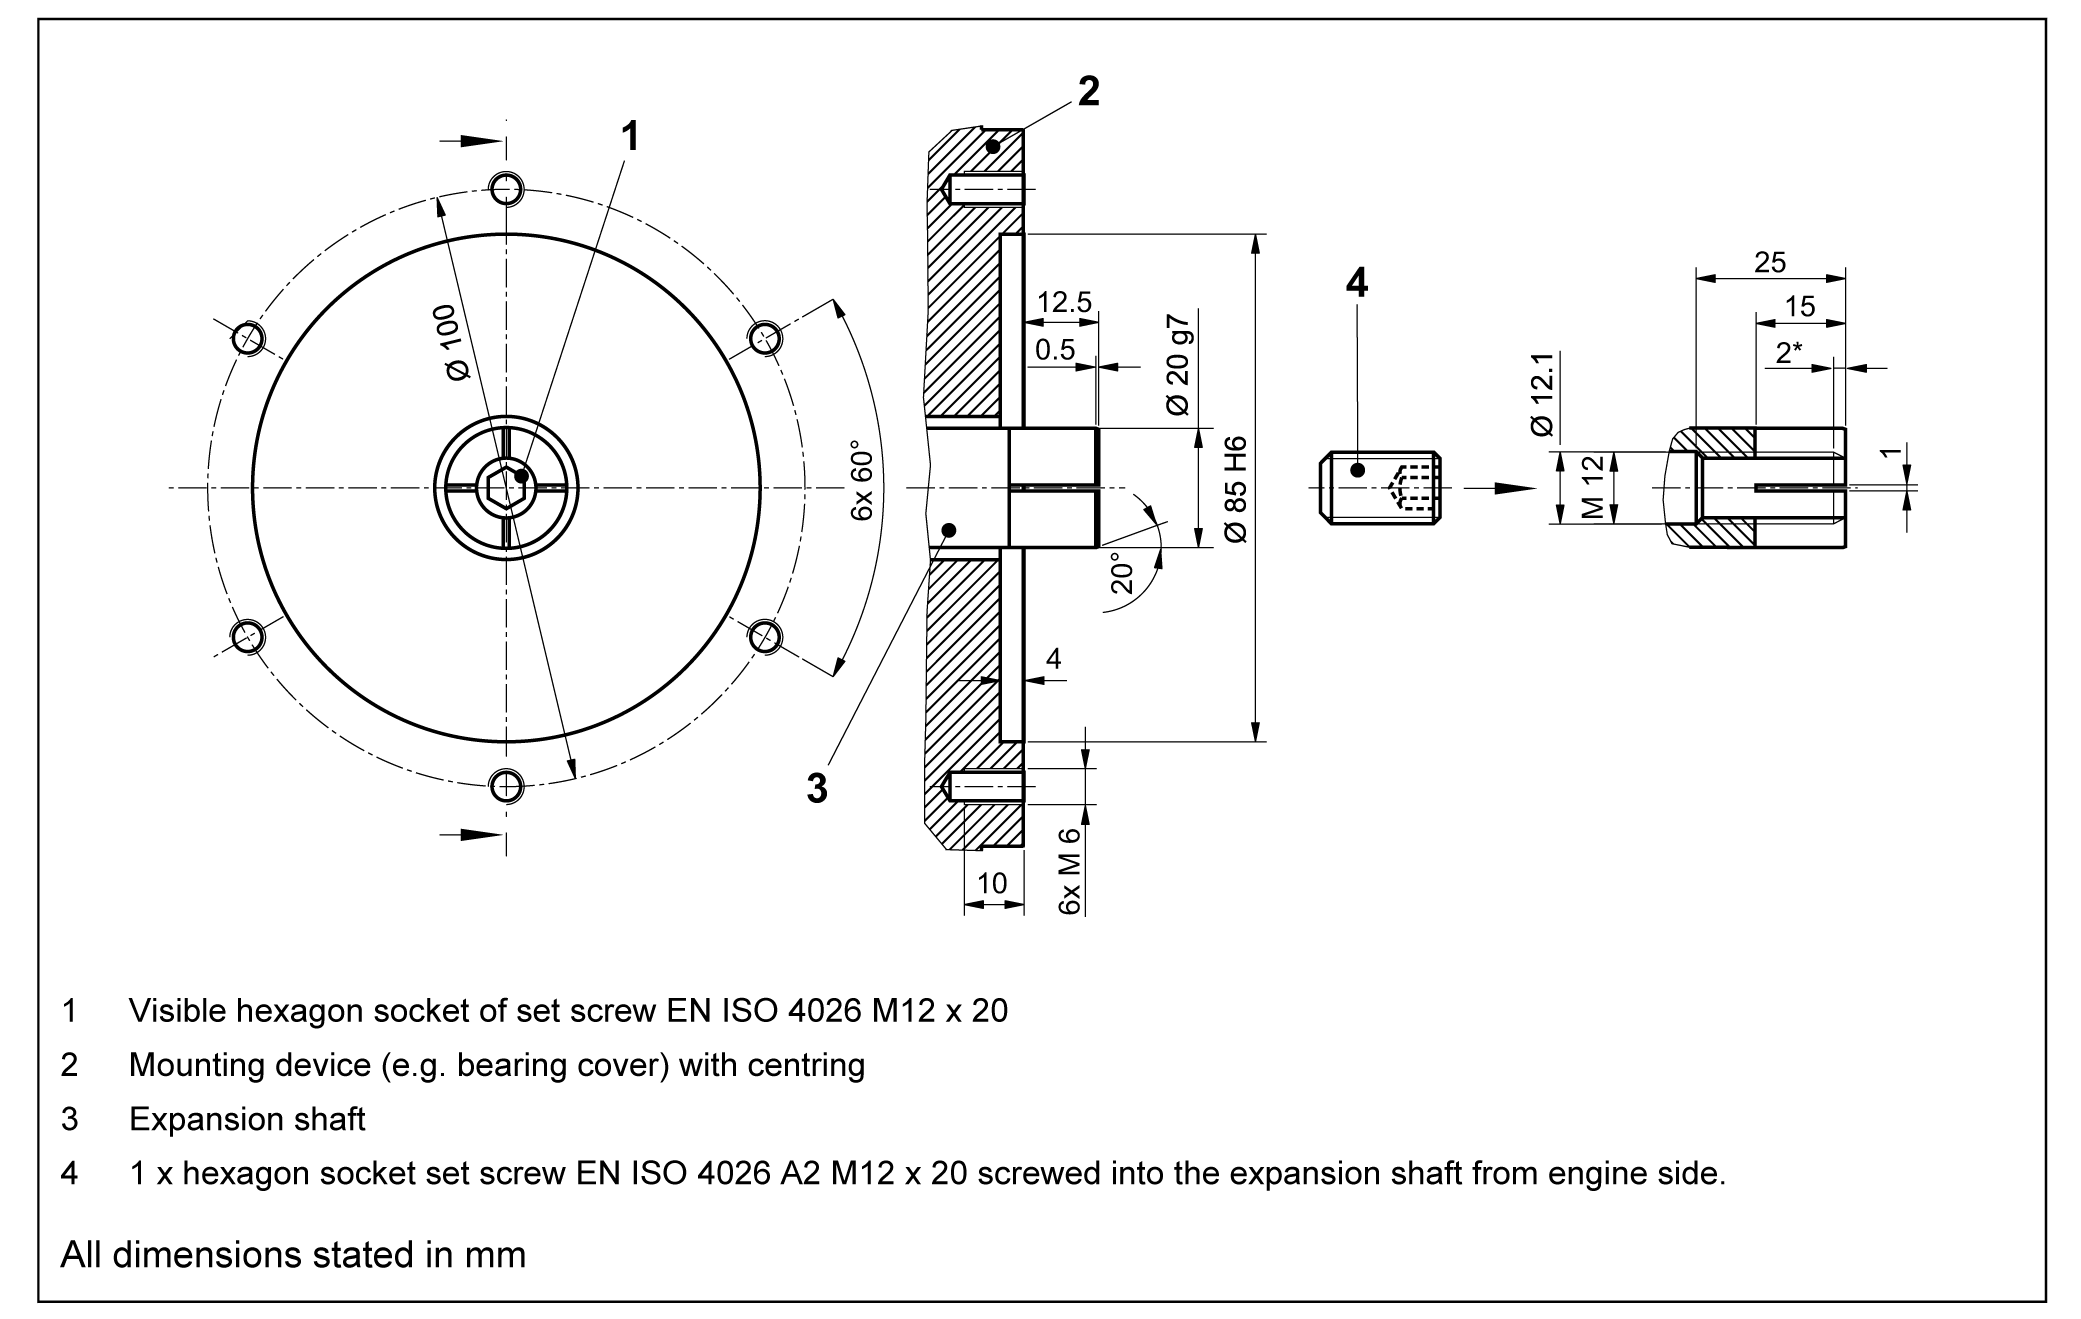 Magnetic Incremental Rotary Encoder Gel 2592- Lenord